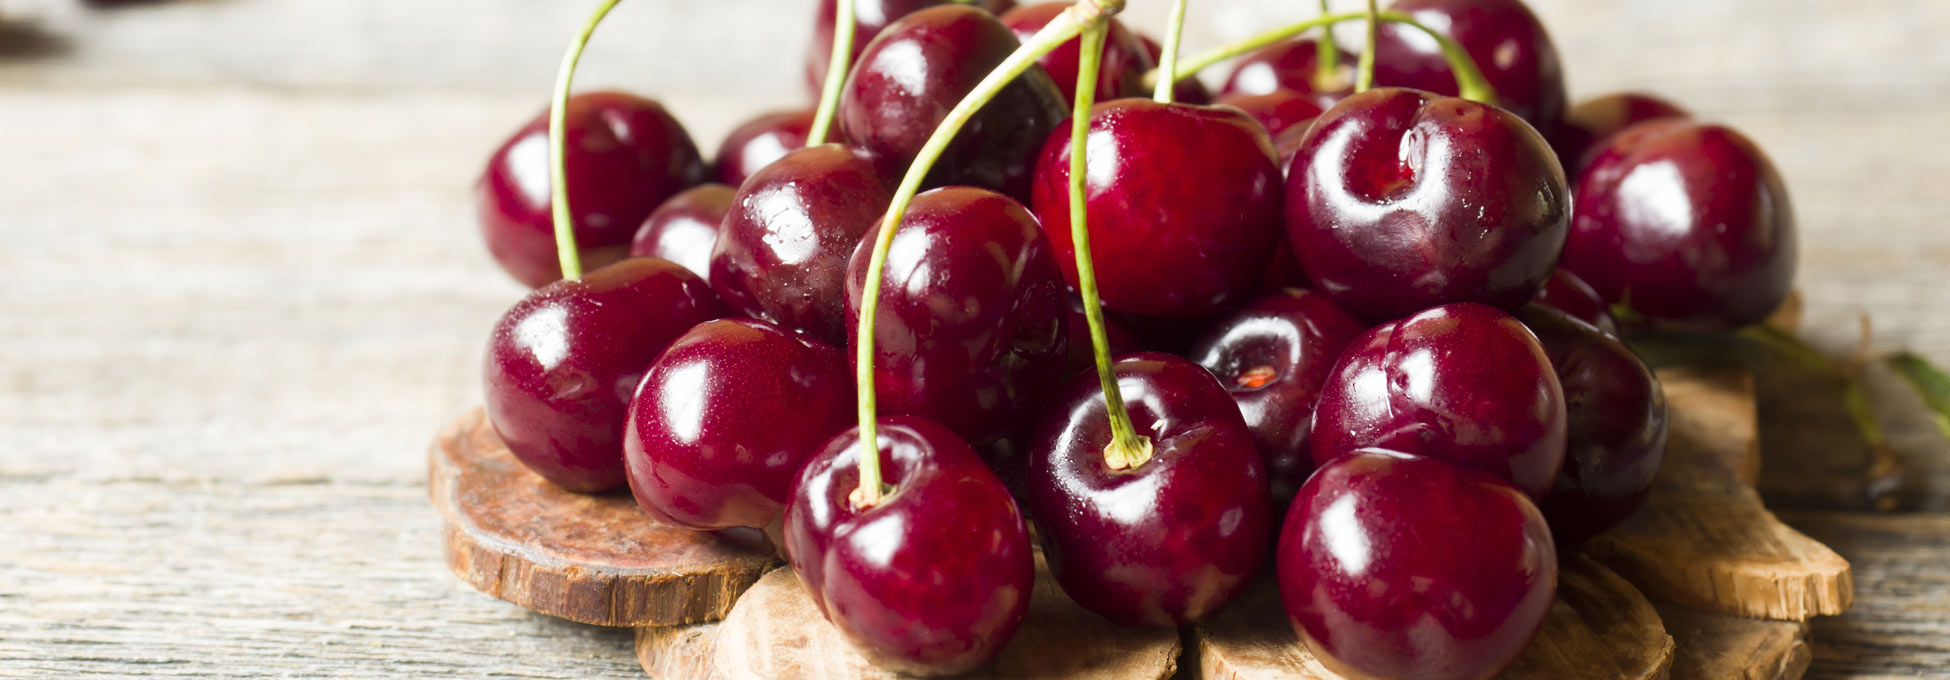 trigs-homepg-banner-bingcherries.jpg